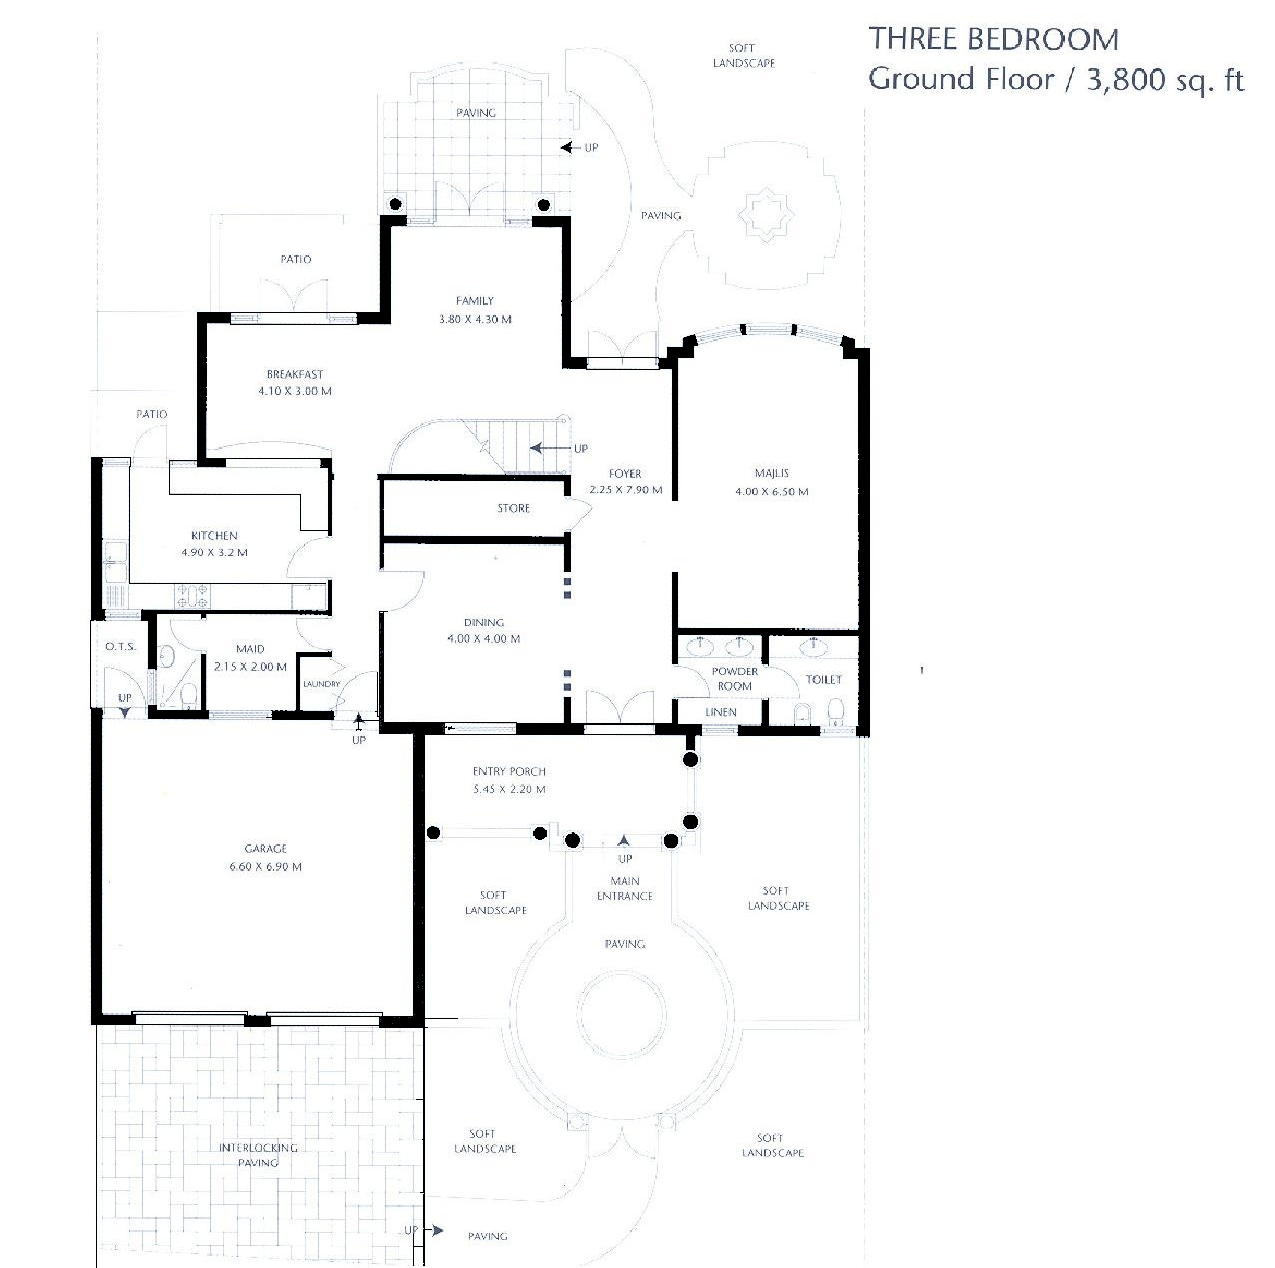 Canal cove floor plans palm jumeirah dubai for 3 bedroom townhouse plans